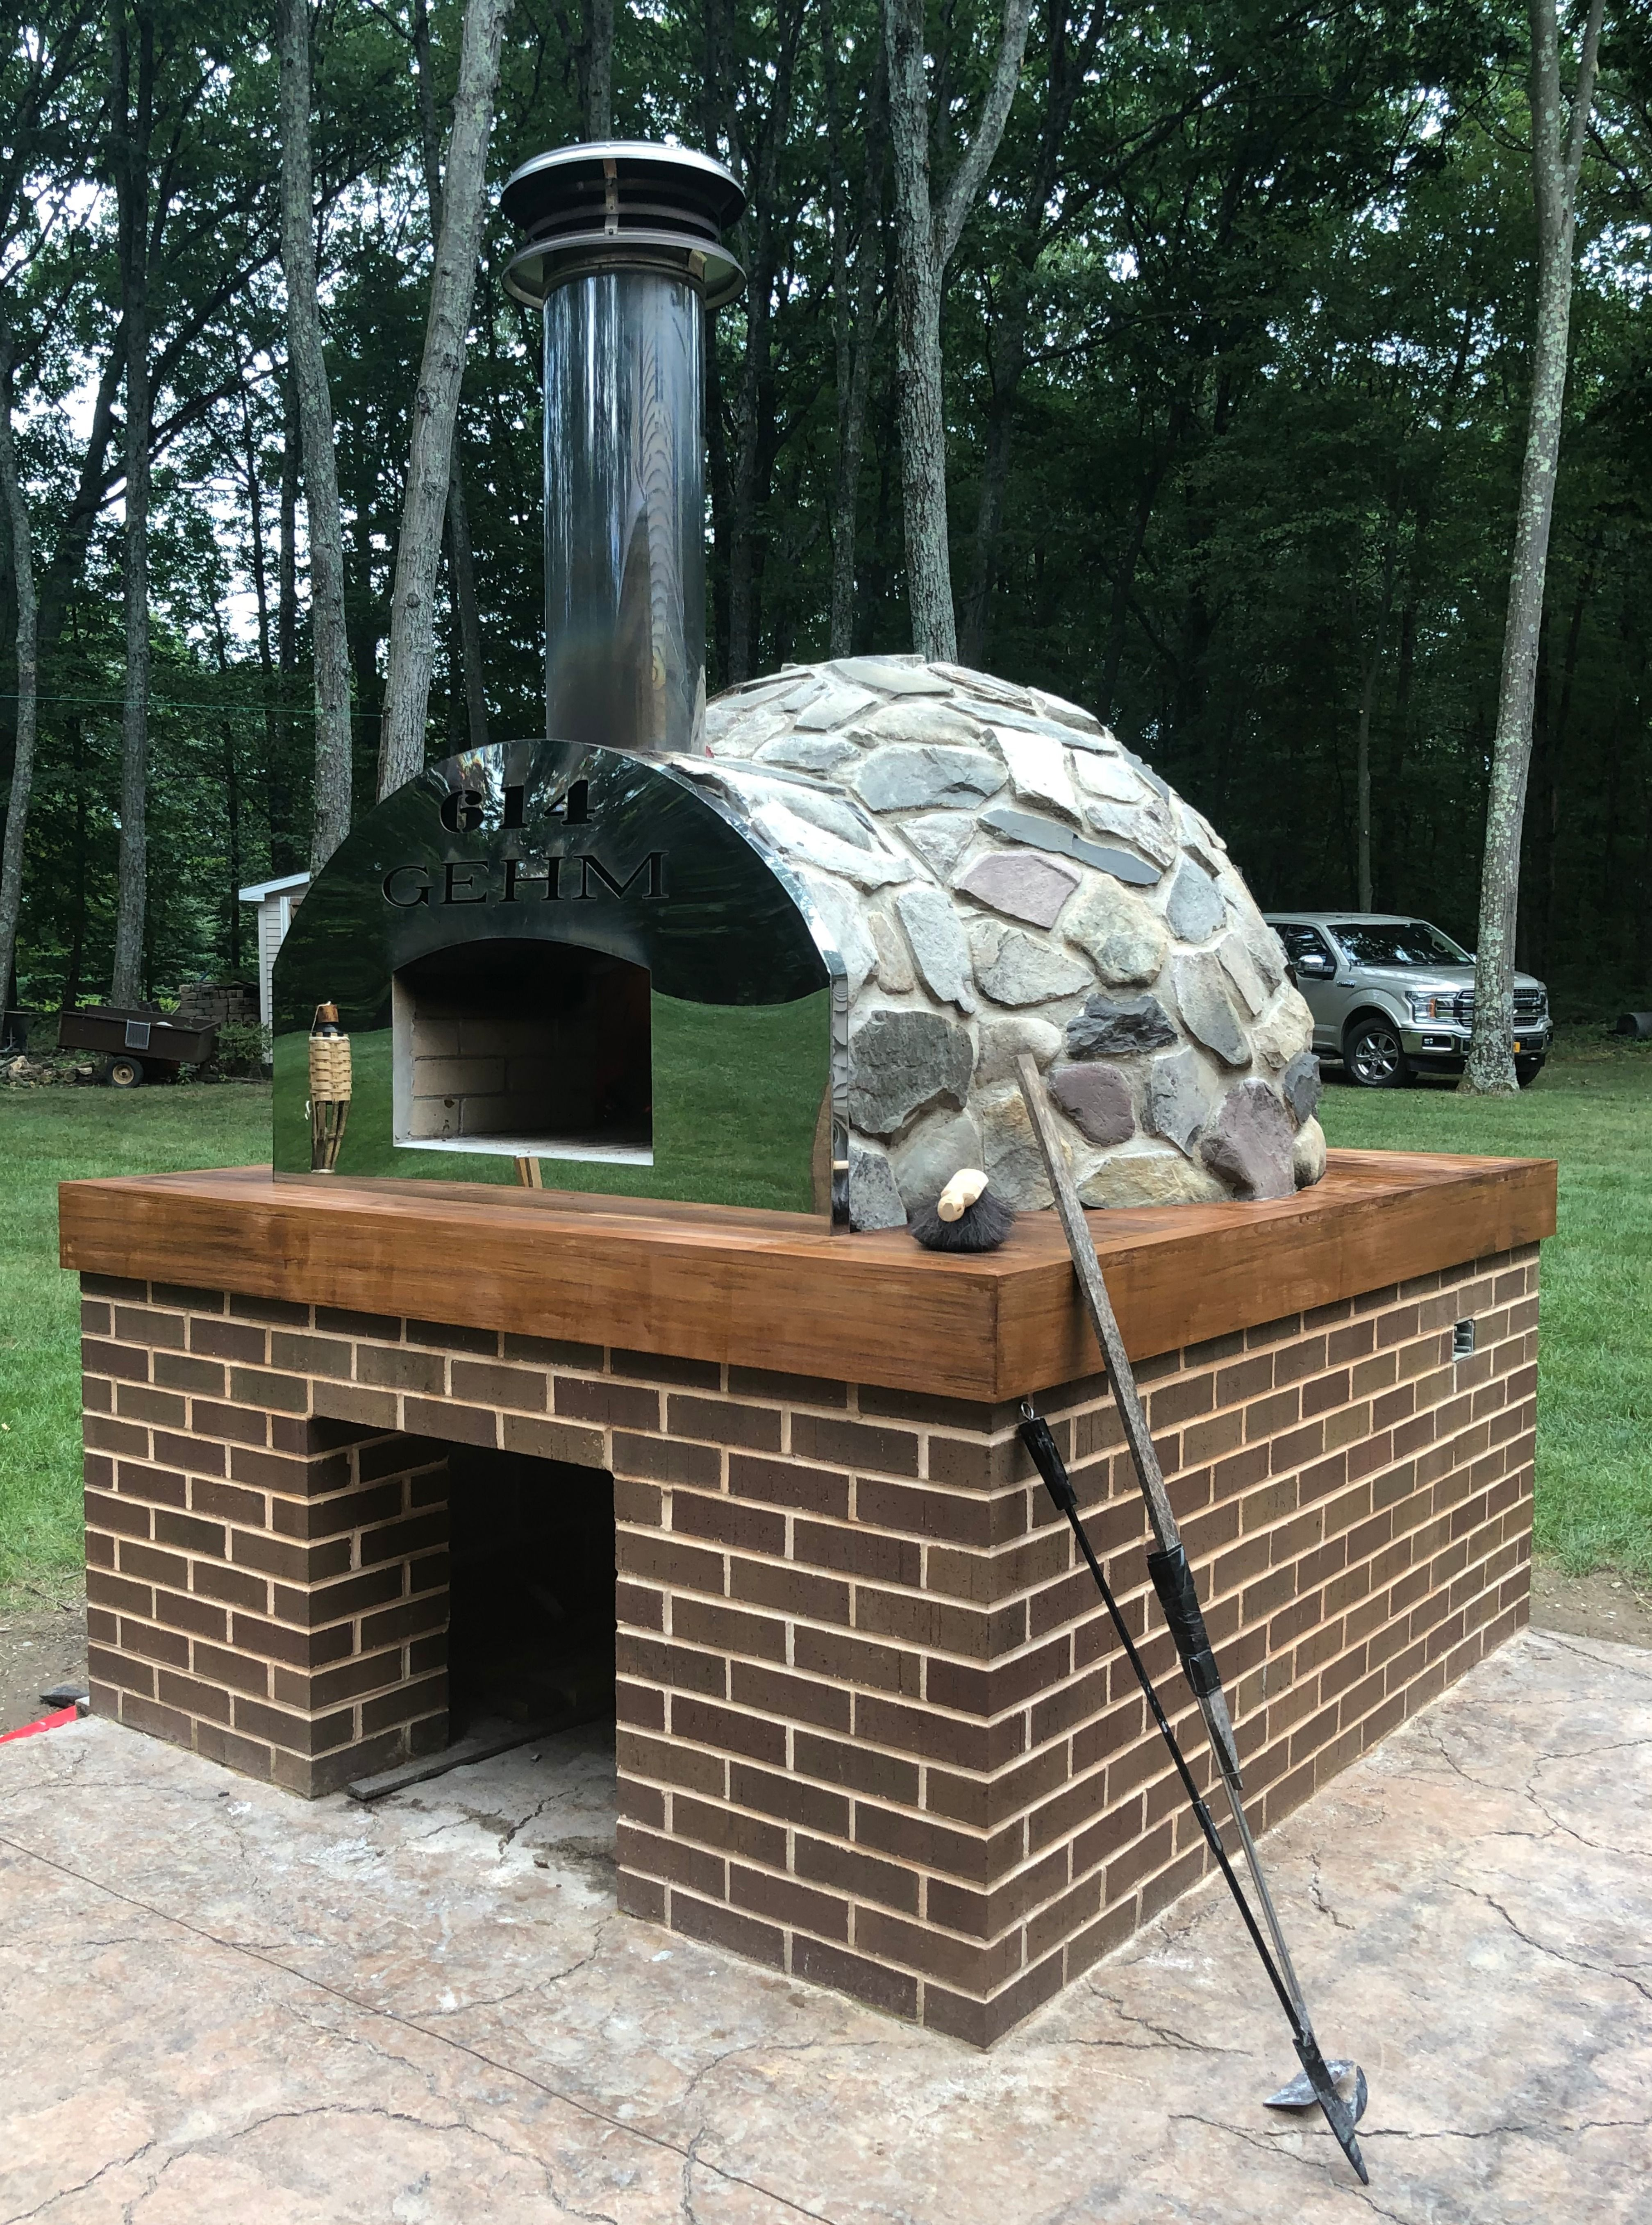 Pompeii Diy Brick Oven Photos In United States Brick Oven Wood Fired Oven Outdoor Bbq Kitchen